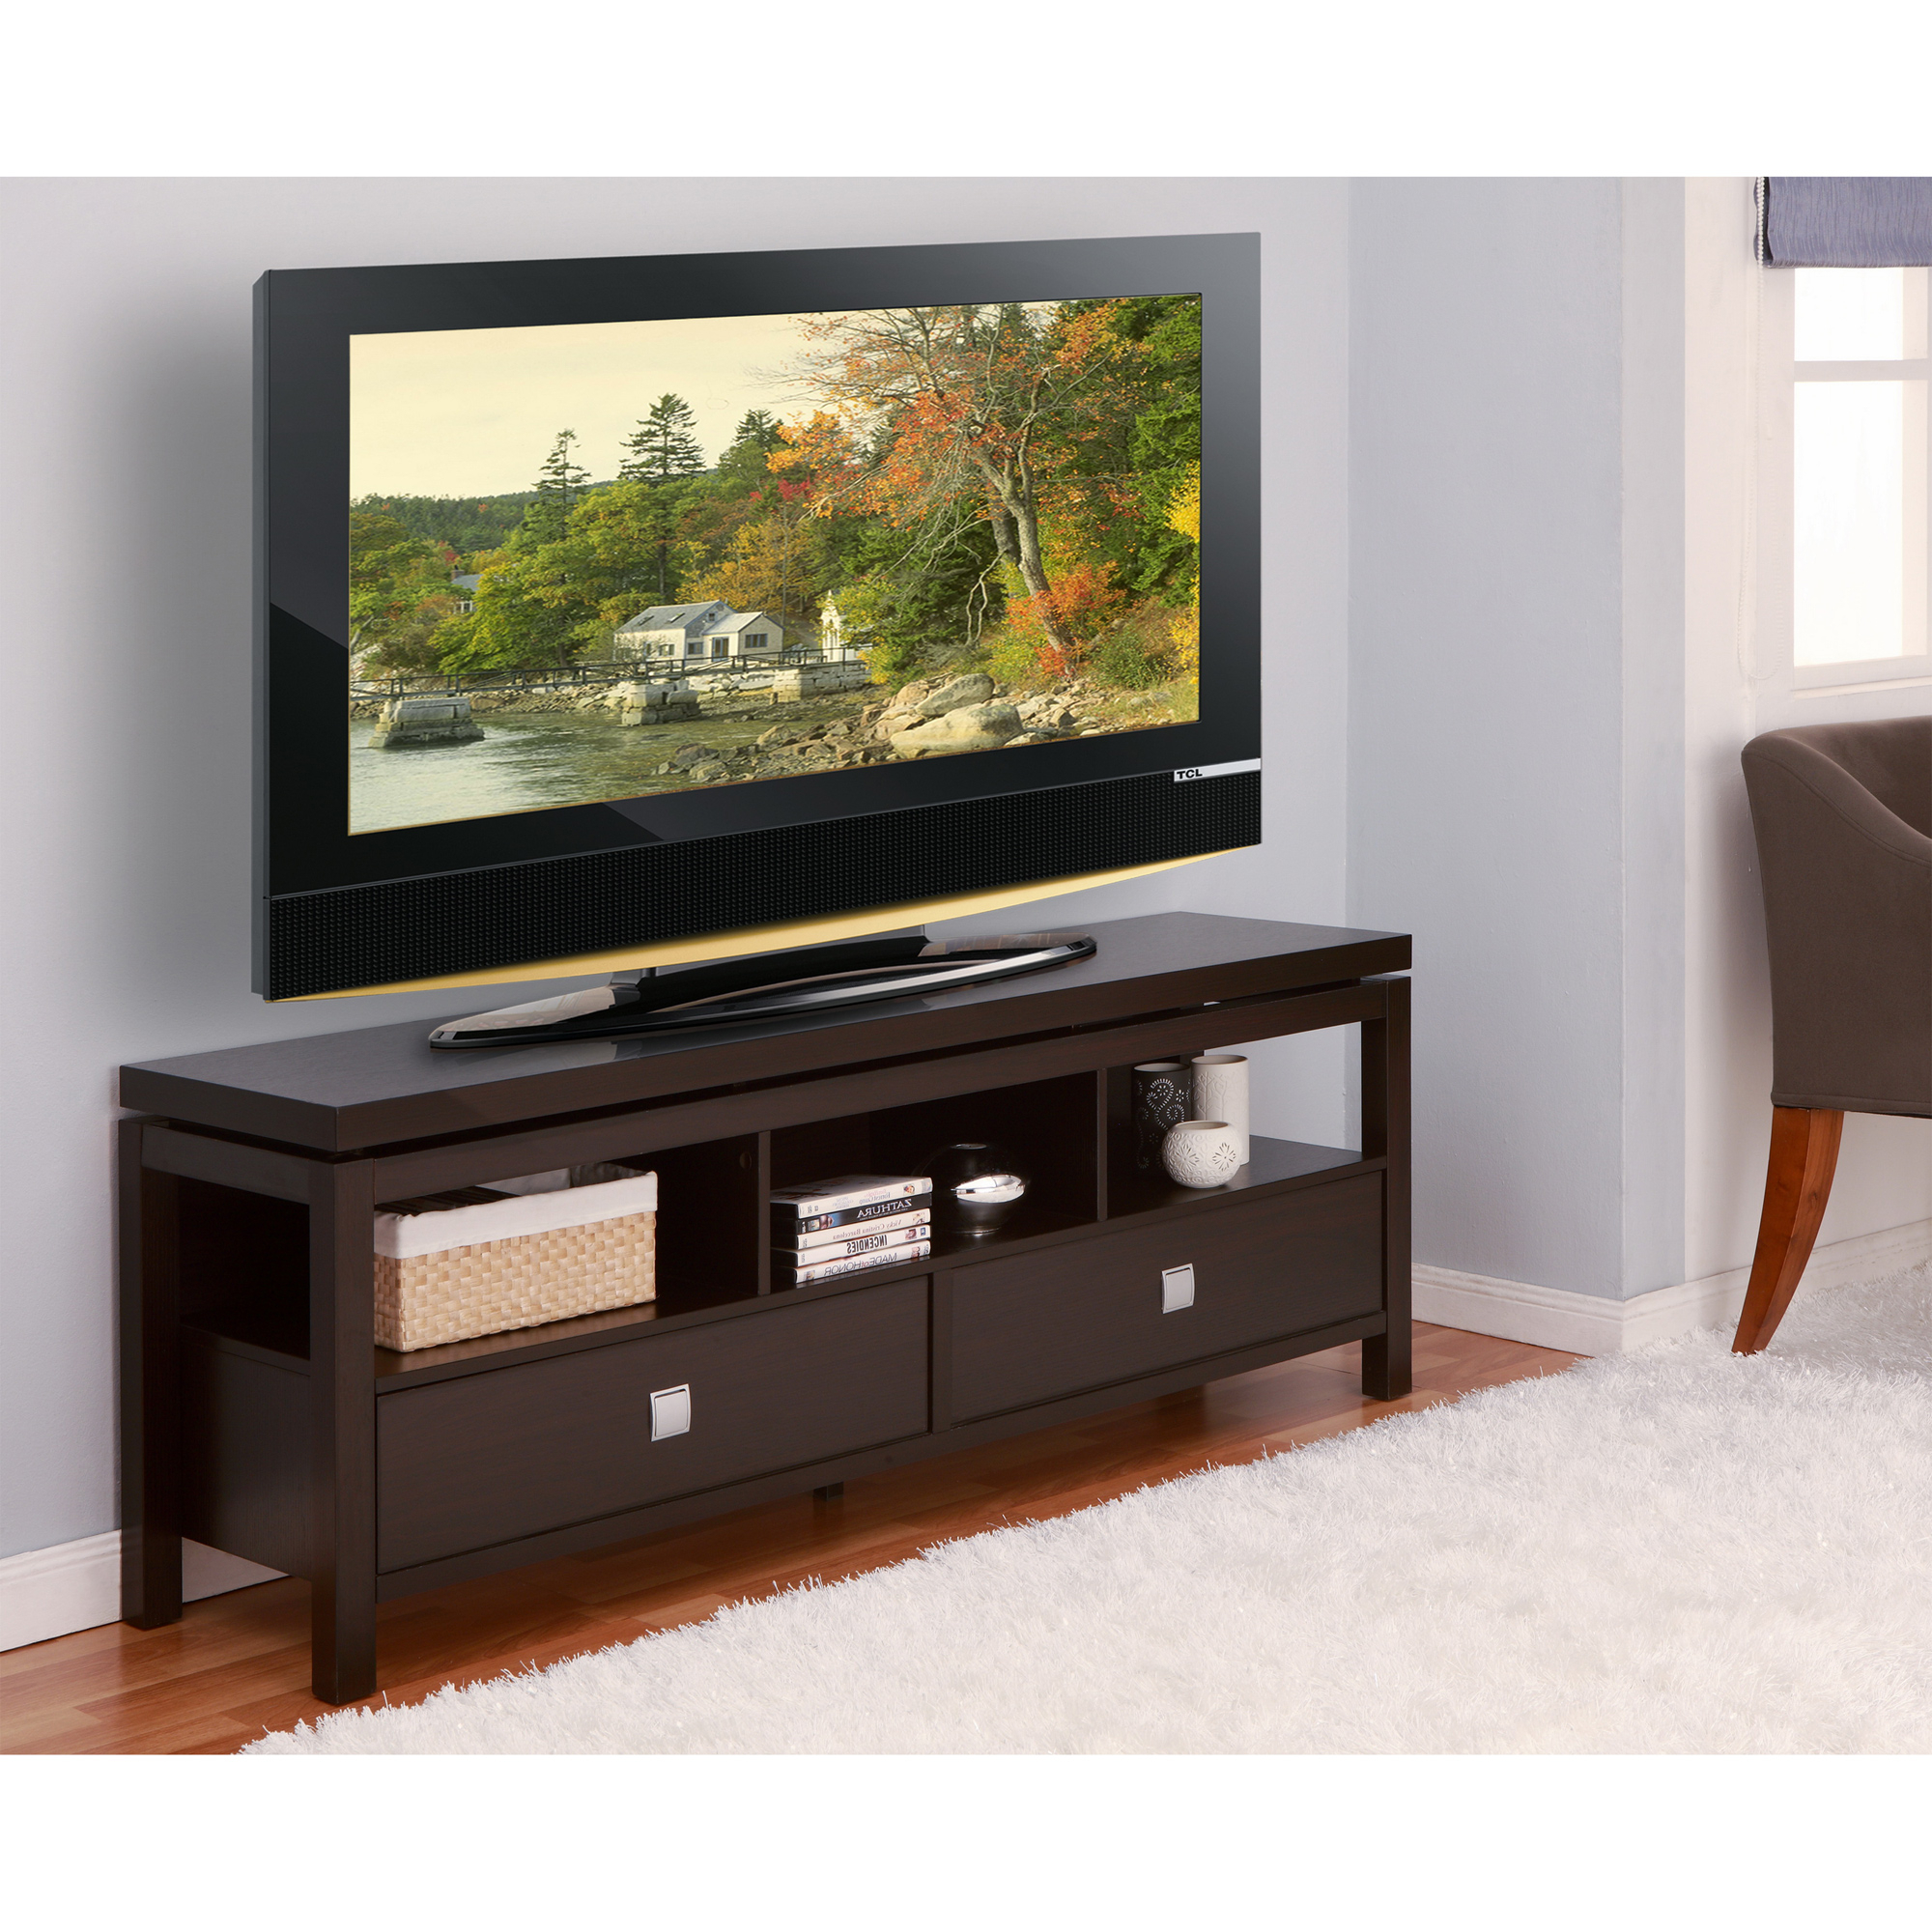 44 Inch Tv Stand 65 With Mount Walmart Stands Best Buy 55 Costco 60 For Oxford 60 Inch Tv Stands (Gallery 5 of 20)